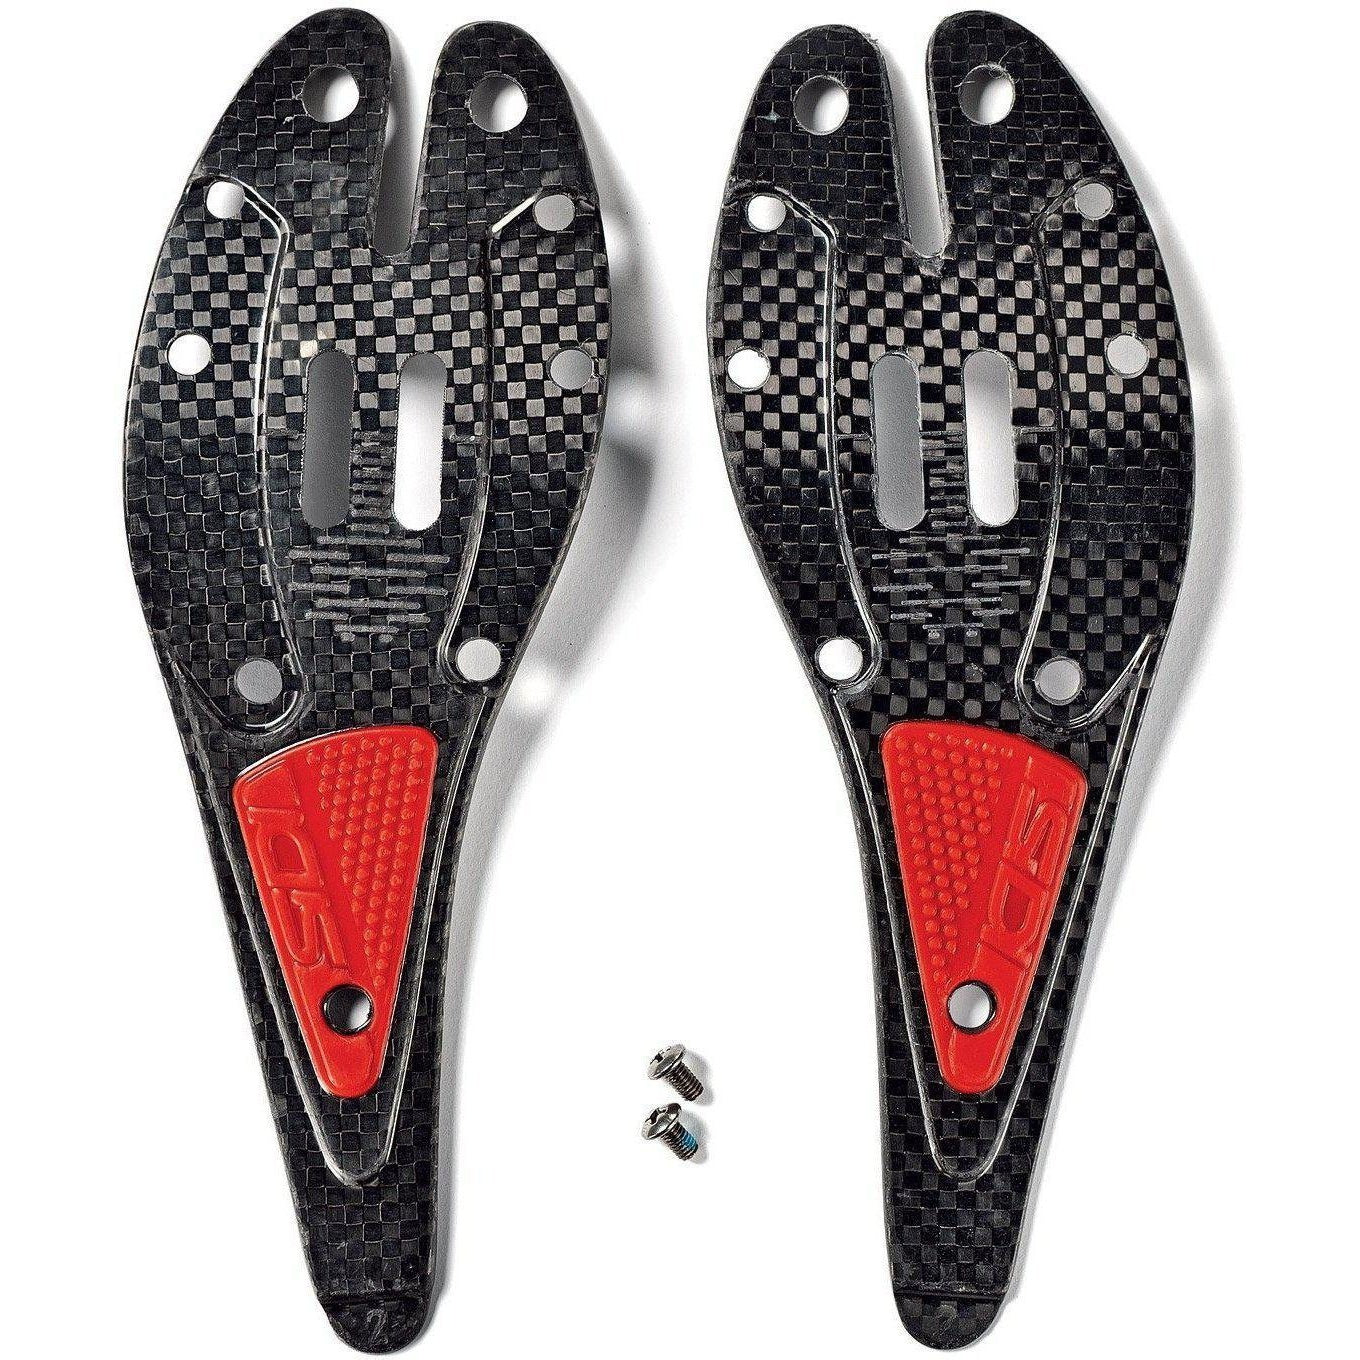 Sidi-Sidi SRS Replacement MTB Carbon Sole Insert-Carbon-39/40.5-SISPRMTBSRSCAR13940-saddleback-elite-performance-cycling